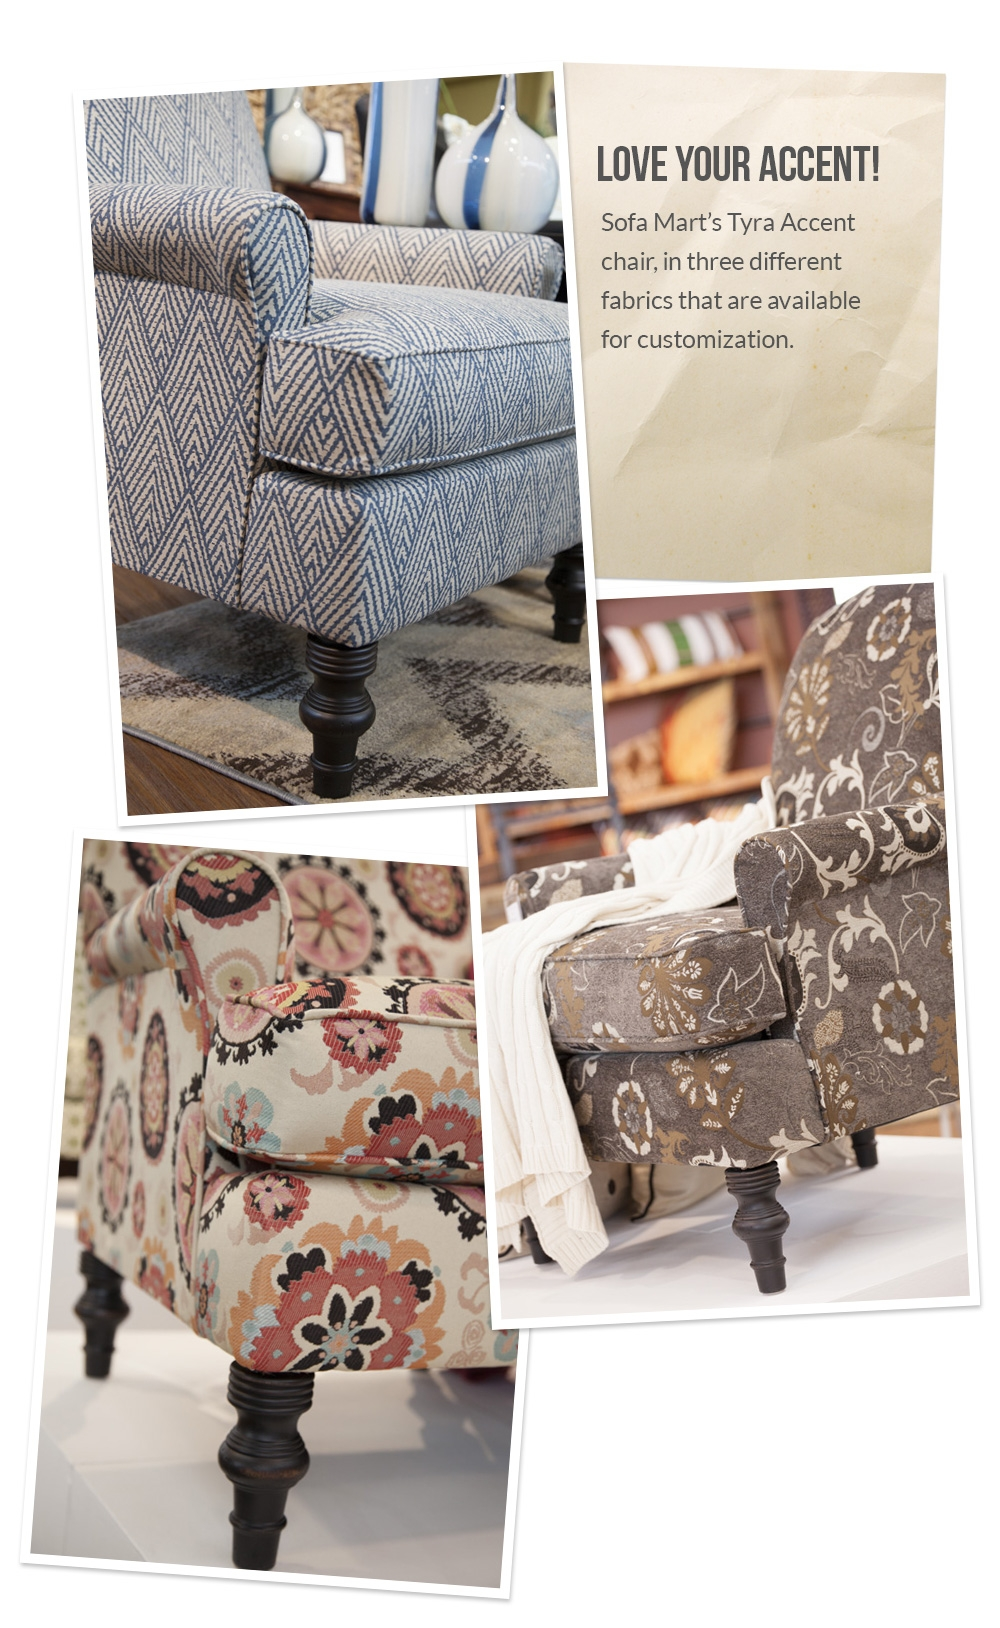 Love Your Accent Custom Accent Chair Fabrics Front Door Intended For Sofa Mart Chairs (Photo 13 of 15)